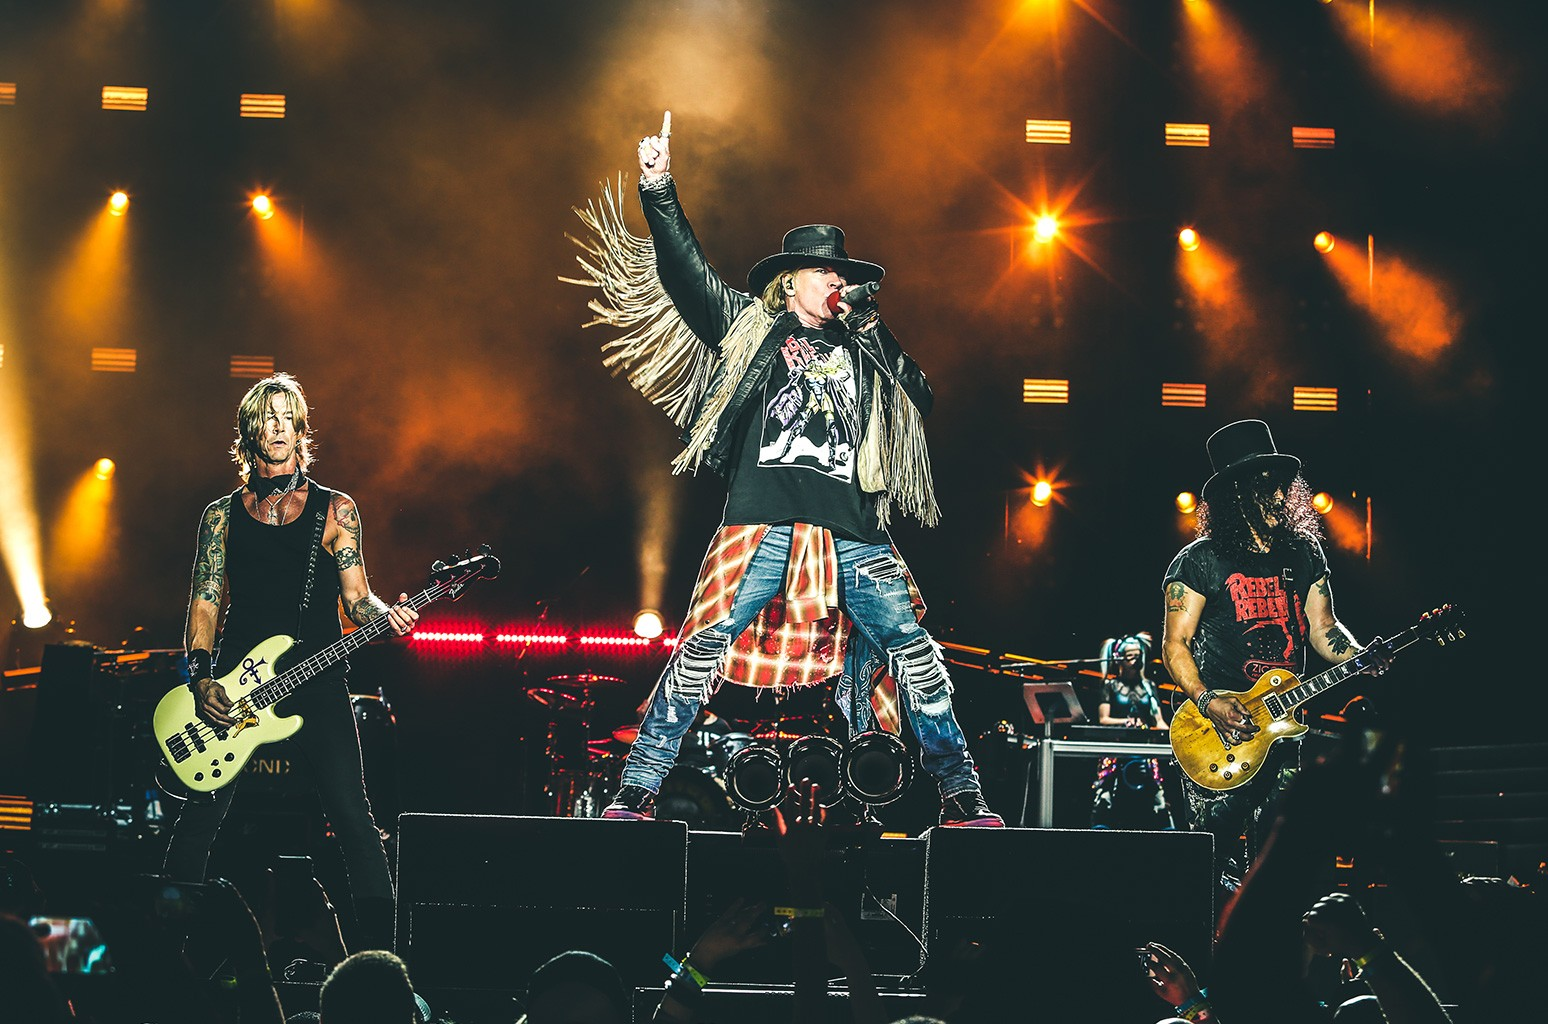 Guns N' Roses Not In This Lifetime Tour live at Soldier Field in Chicago on July 1, 2016.